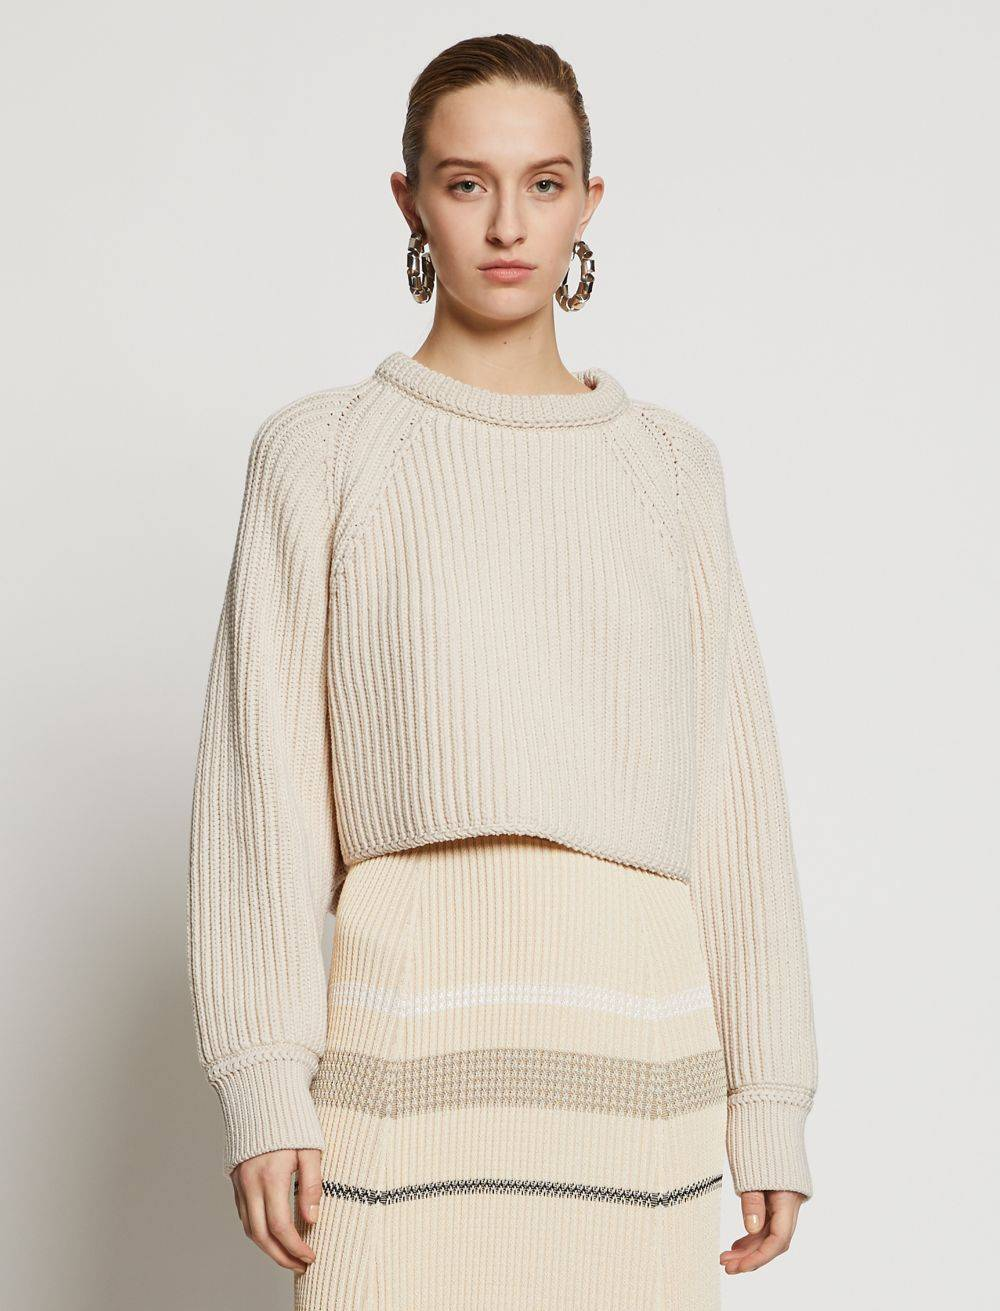 Proenza Schouler Chunky Cotton Rib Sweater ecru/white M